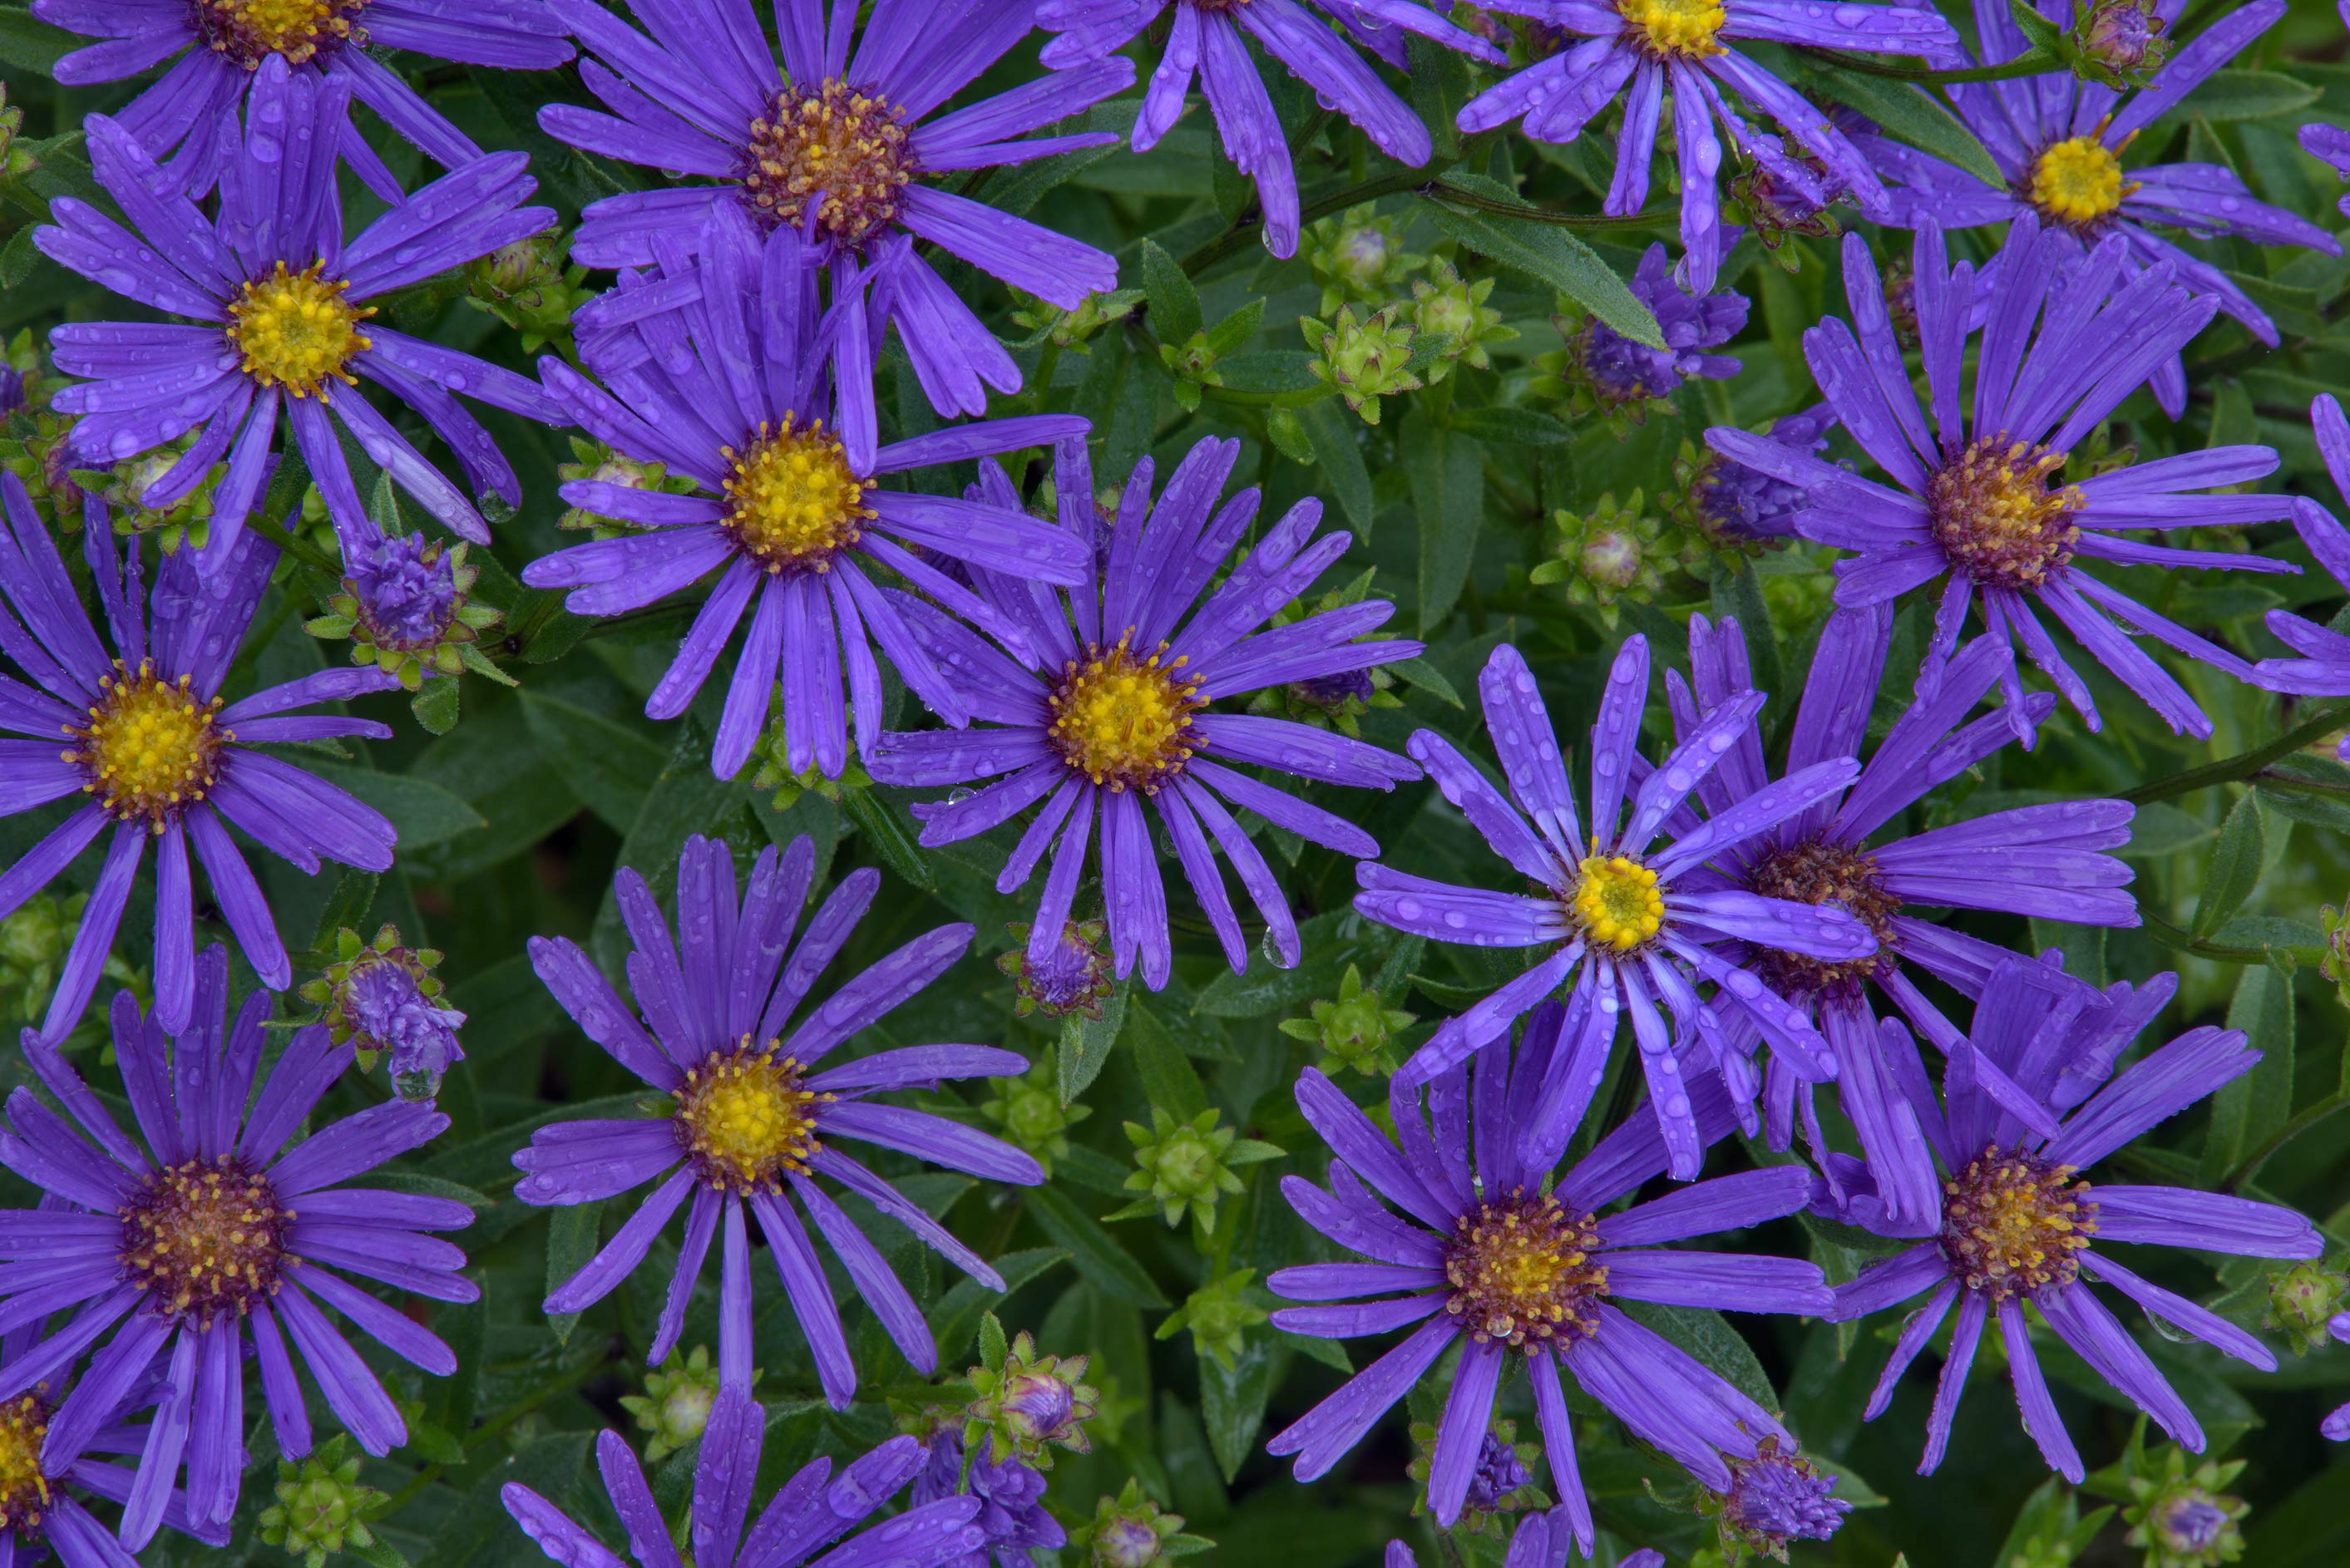 Photo 1903 06 blue flowers of michaelmas daisy aster amellus x large image izmirmasajfo Image collections